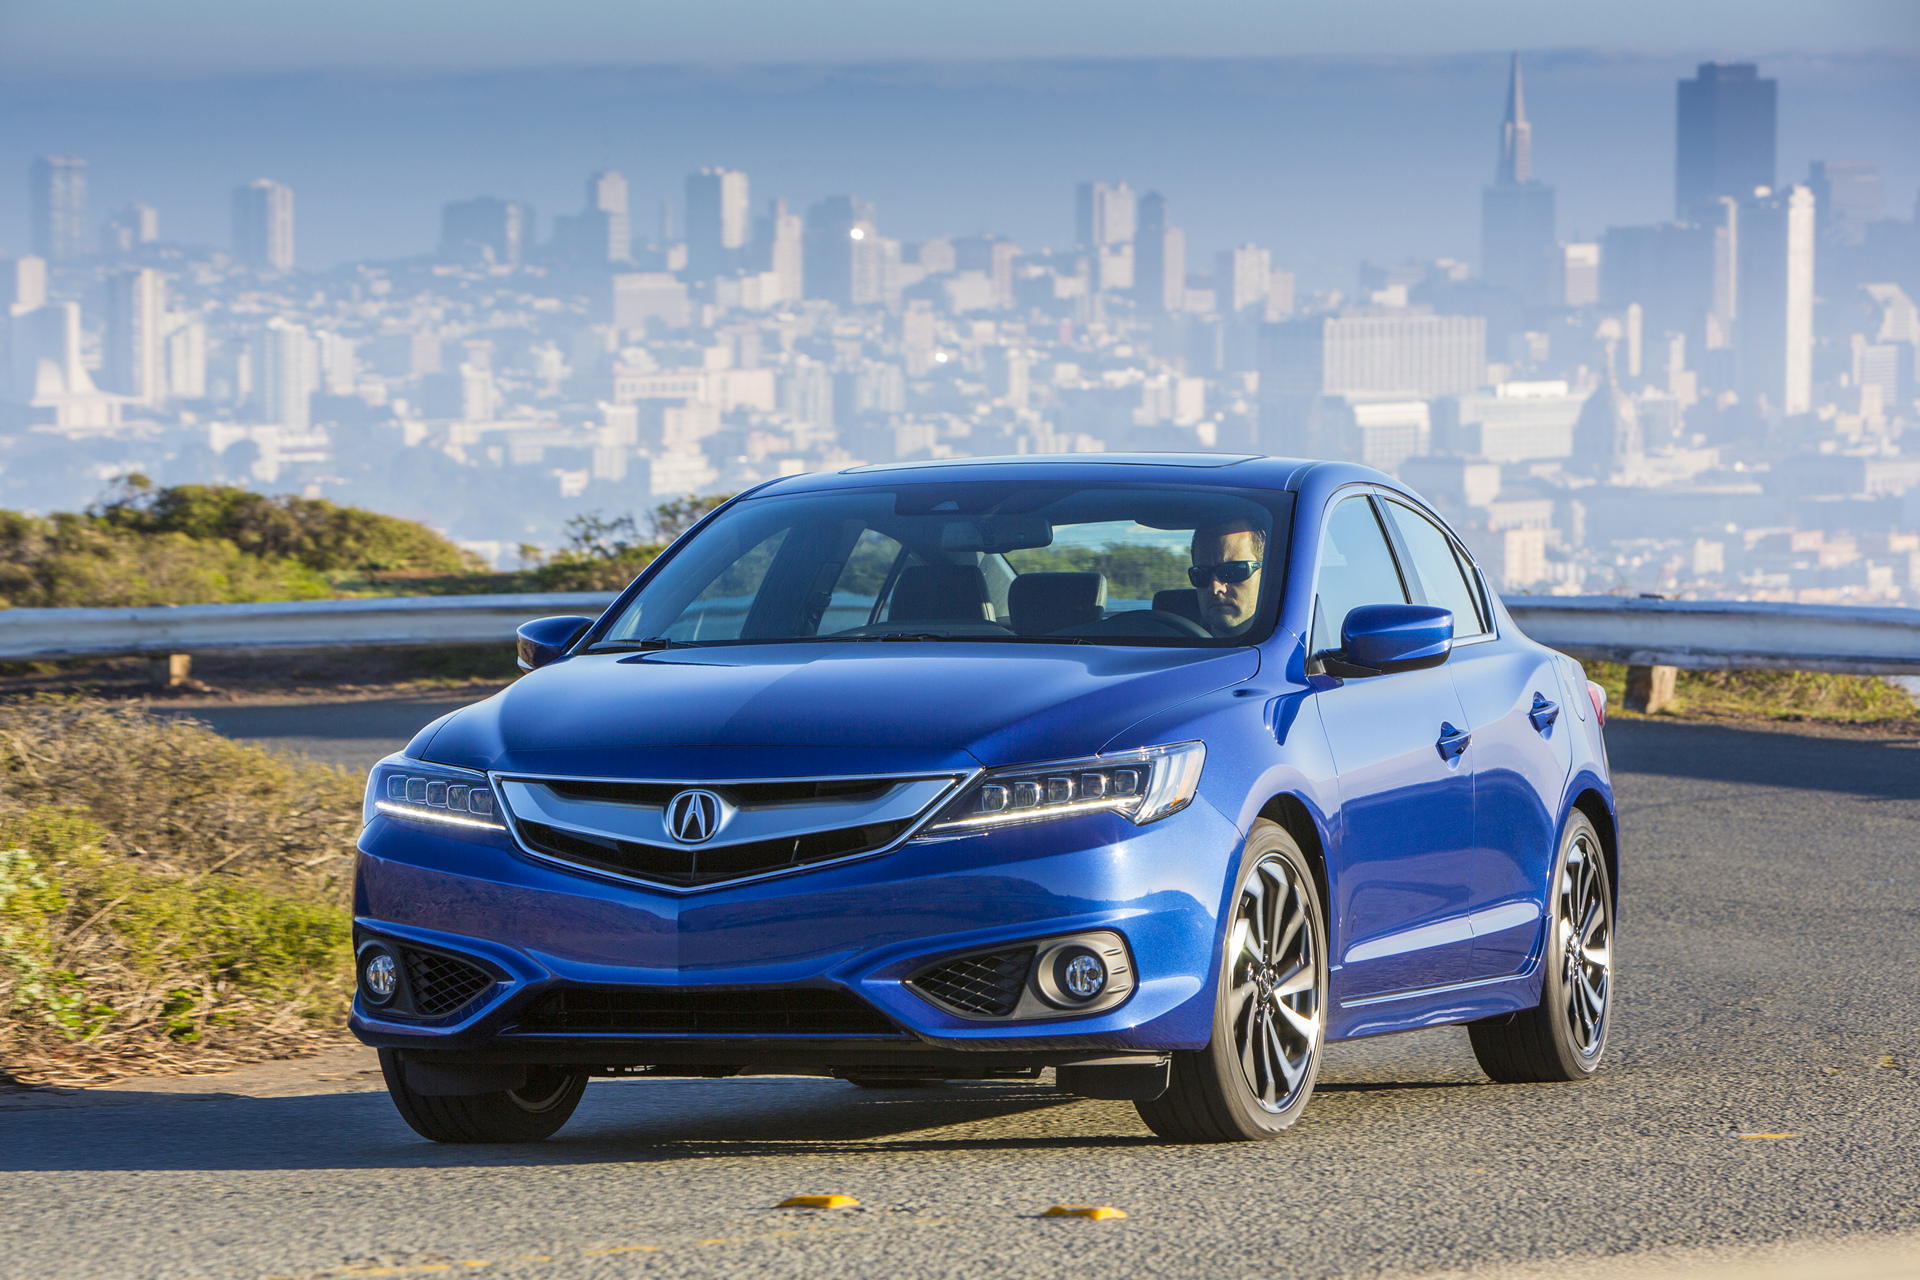 Acura Ilx Gateway Sports Sedan Returns For 2017 Model Year Carrrs Auto Portal